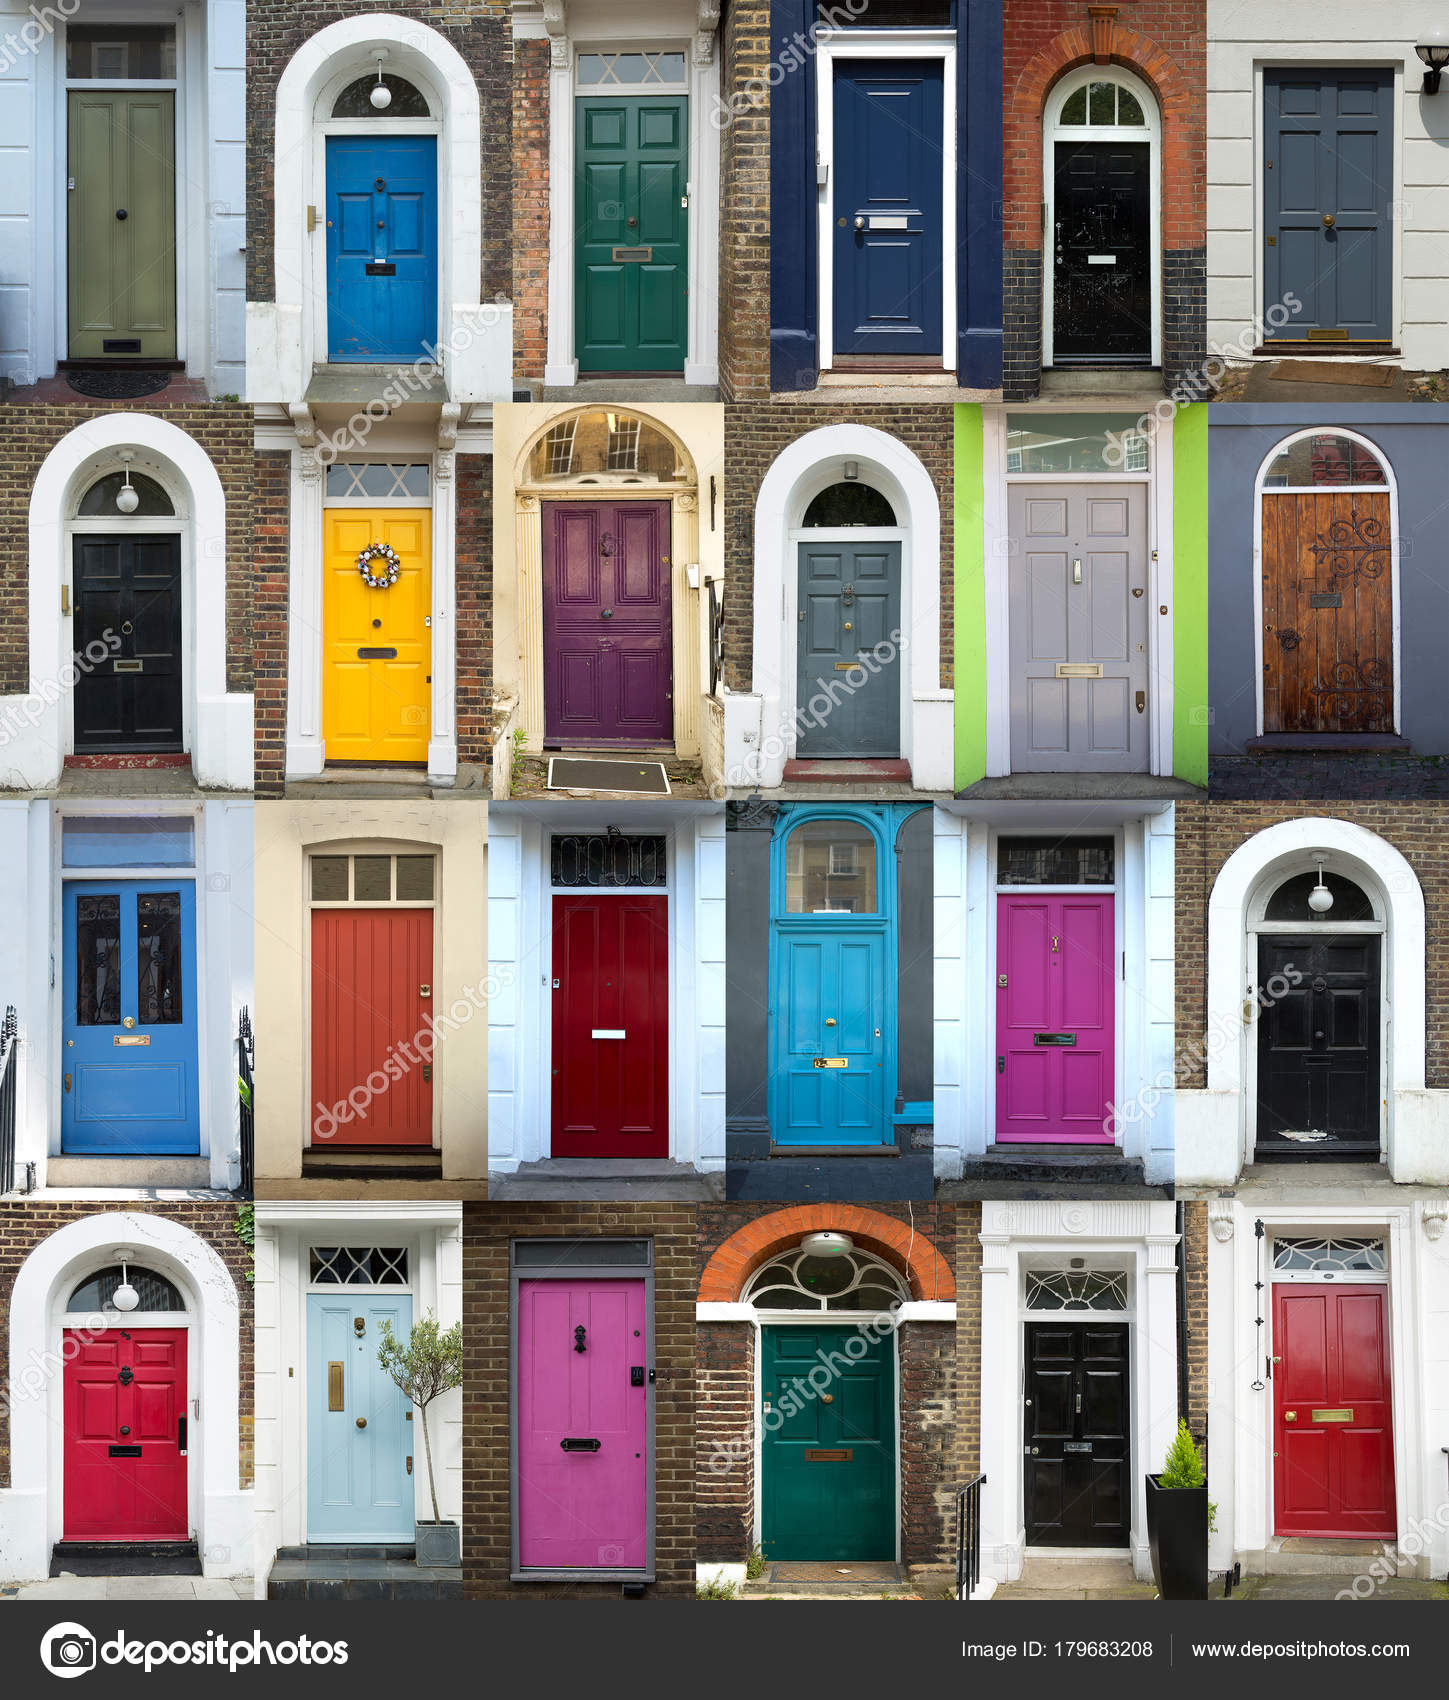 Collage of 24 old and colorful doors from London UK u2014 Photo by pinkcandy & Colorful doors in London u2014 Stock Photo © pinkcandy #179683208